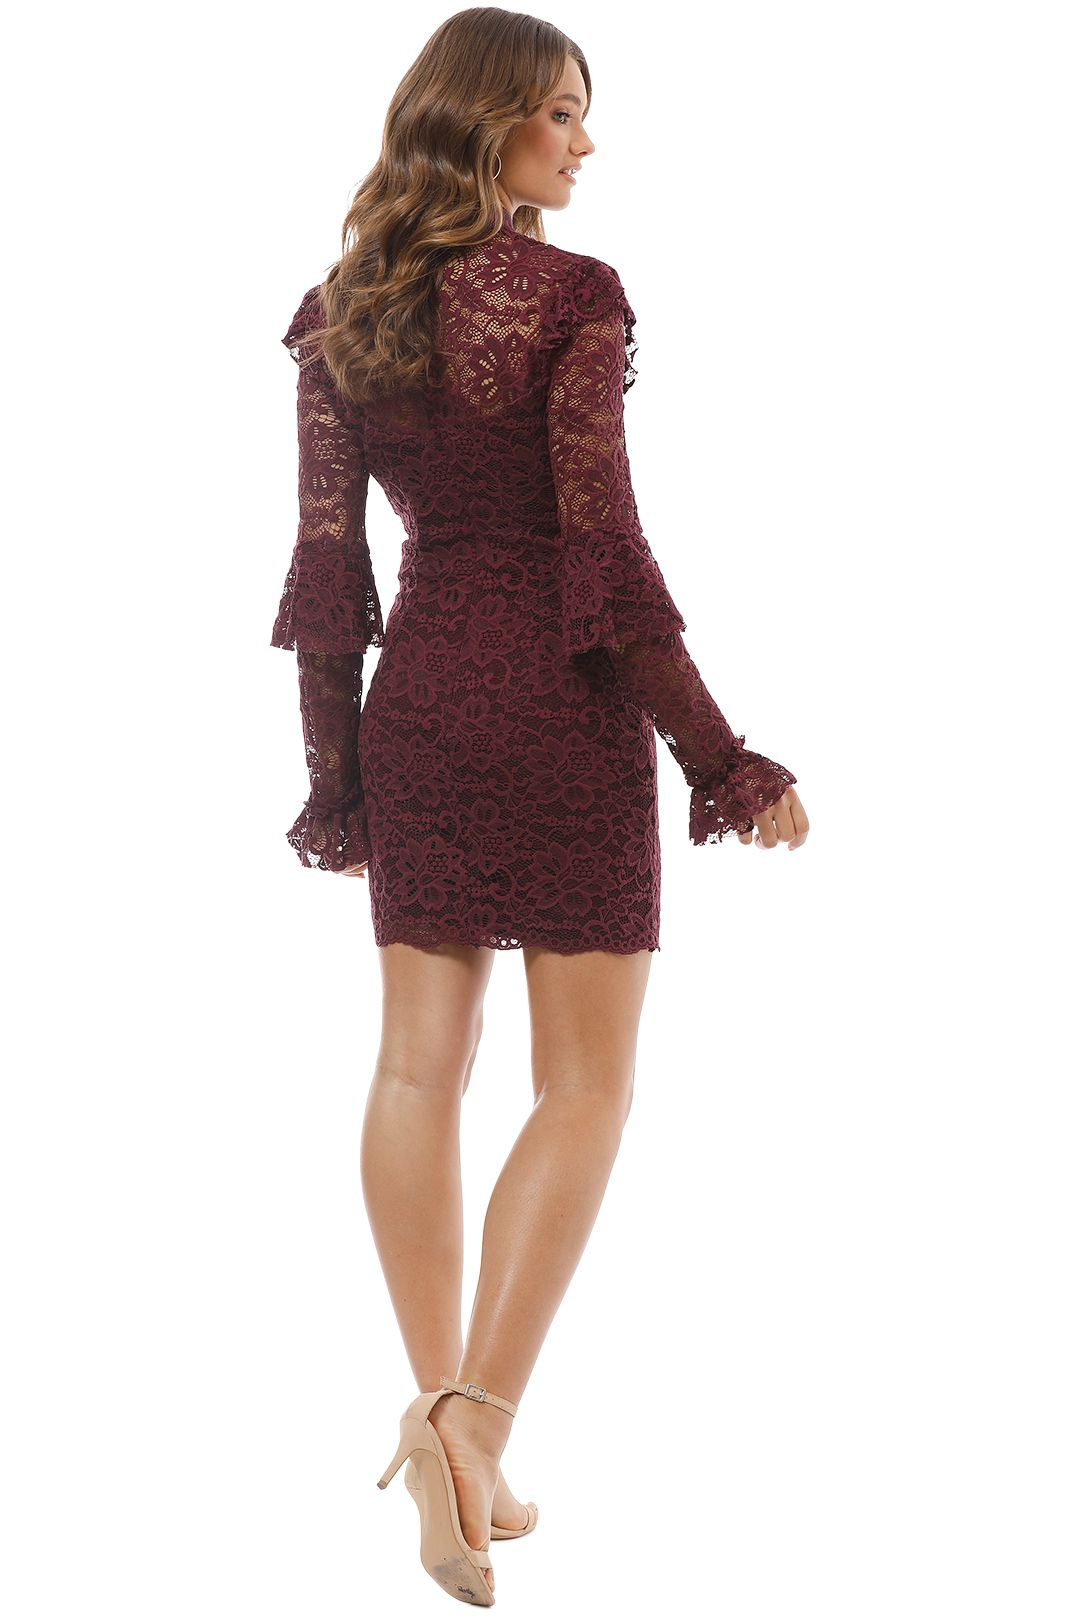 Pasduchas - Winsome Dress - Red Wine - Back